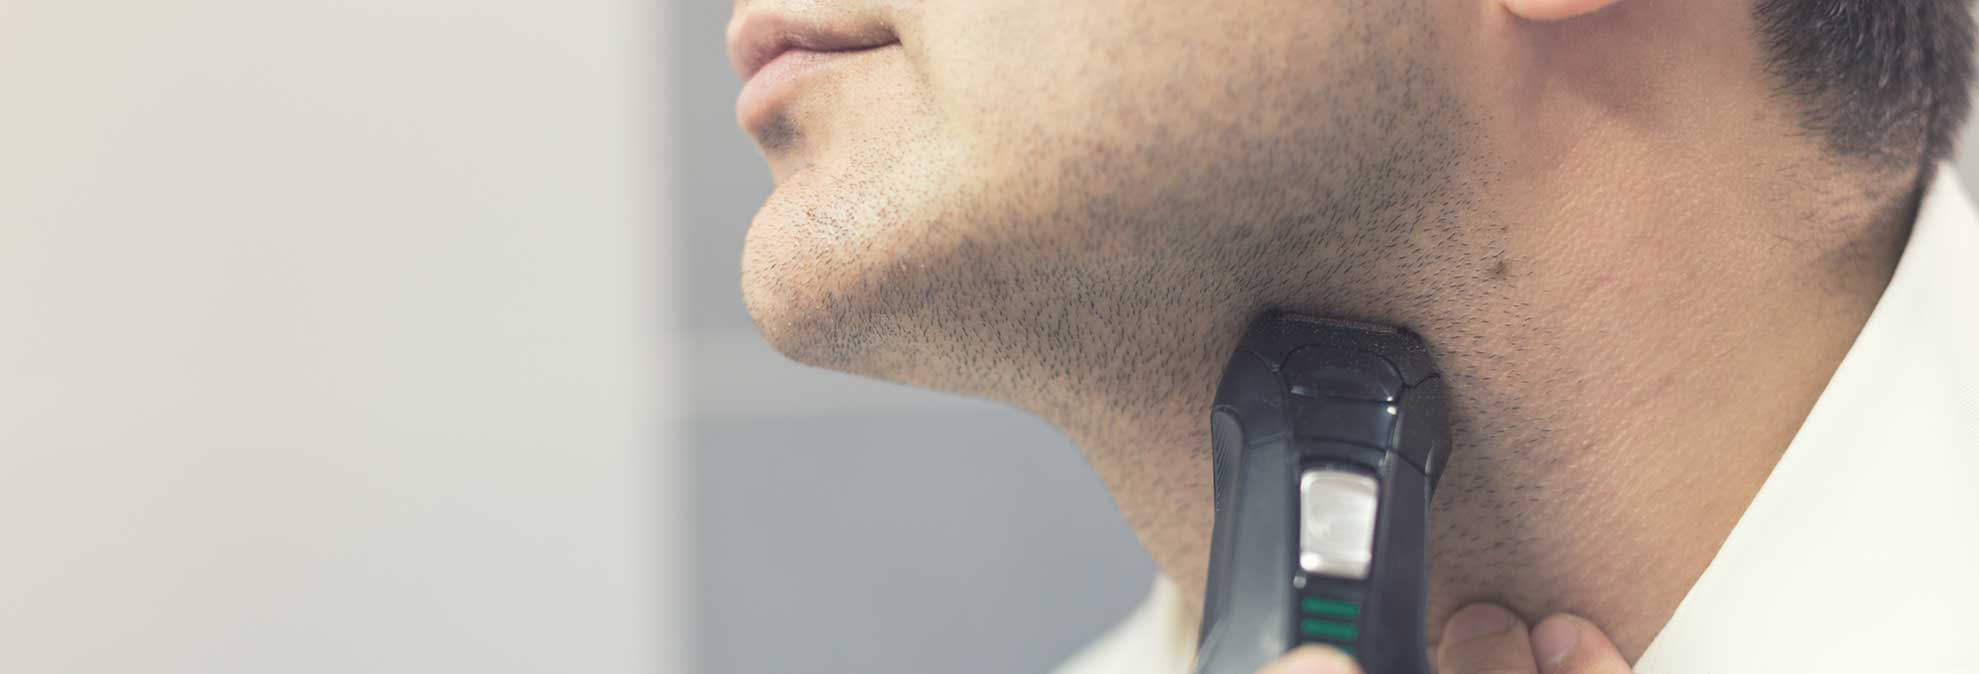 Best Electric Razor Buying Guide – Consumer Reports